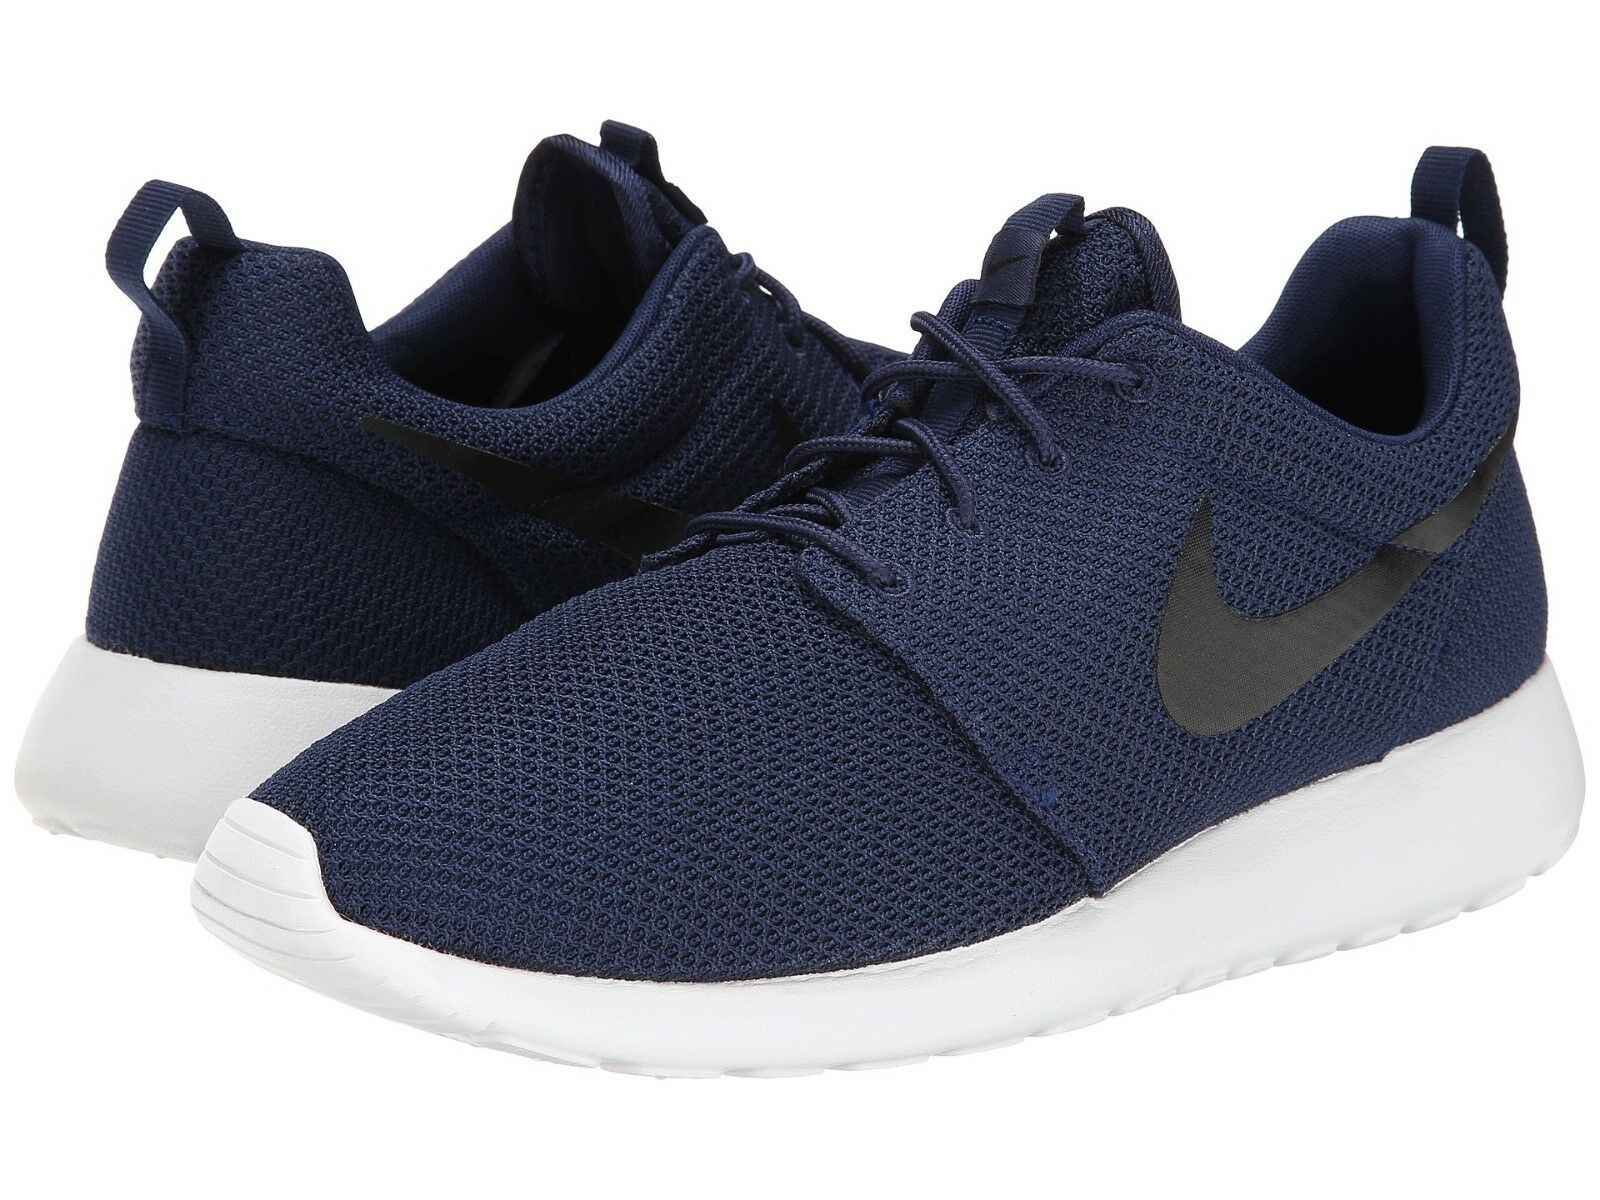 Men's Nike Roshe One Lifestyle Shoes Midnight Navy/Wht-Blk NIB 8-12 511881-405